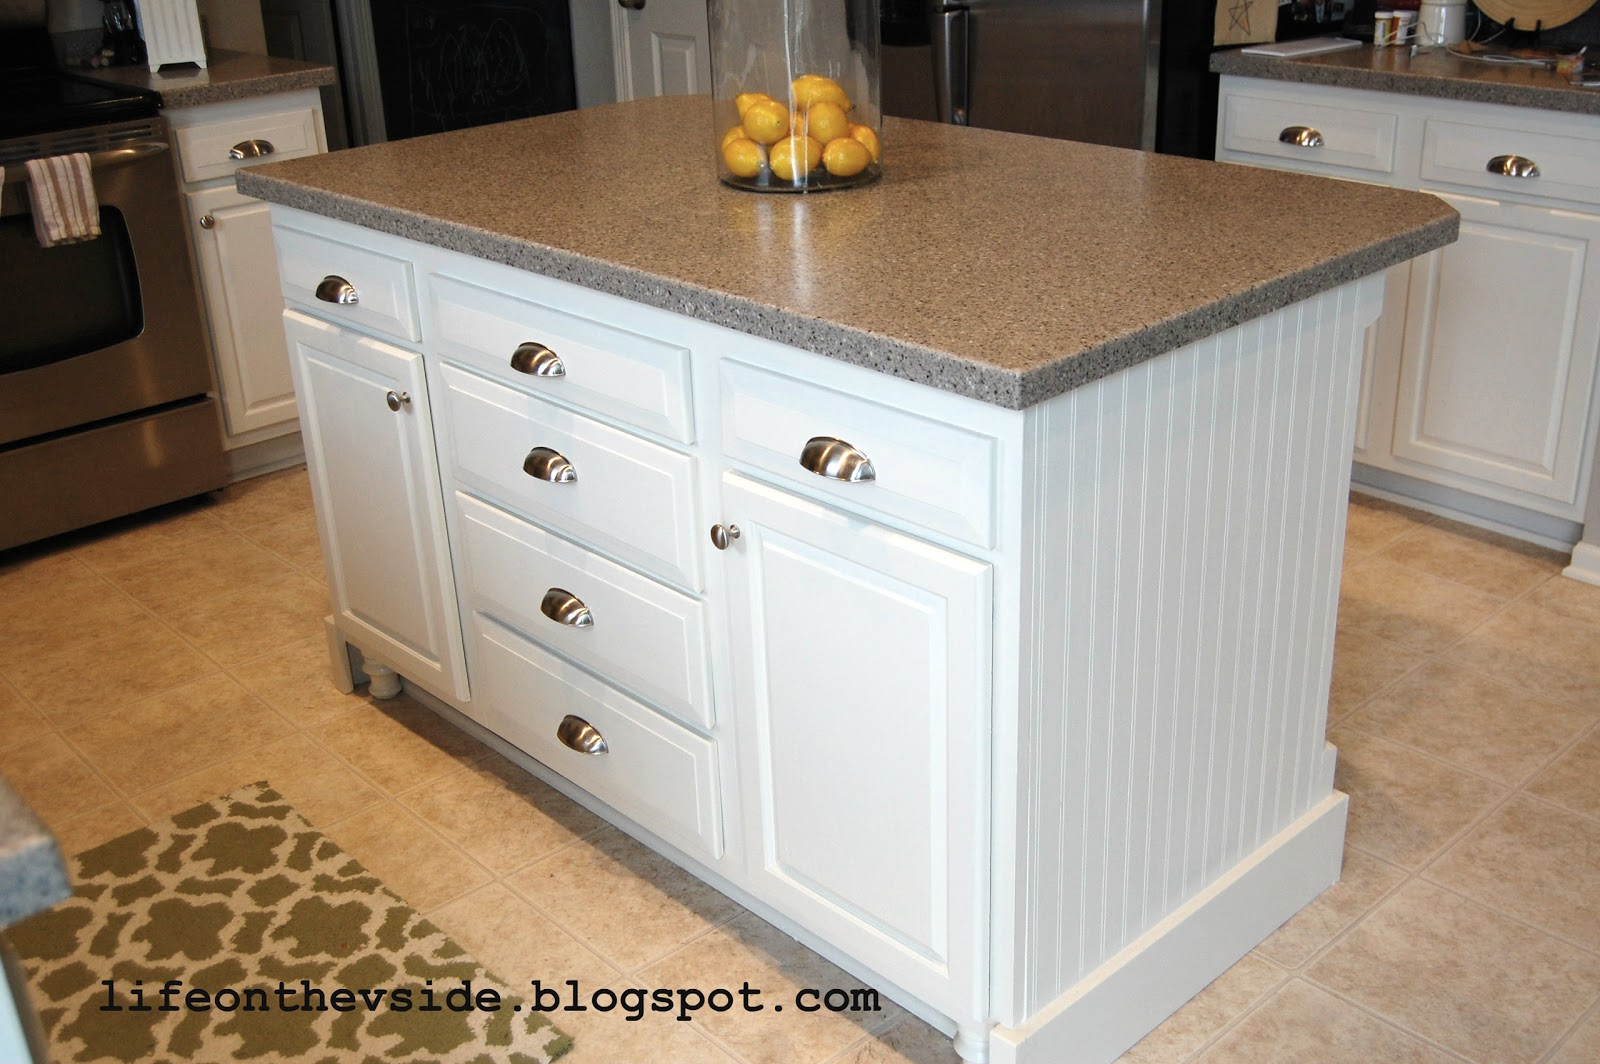 Kitchen Island 3 Feet By 5 Feet diy kitchen island from cabinets diy kitchen island cabinet. open